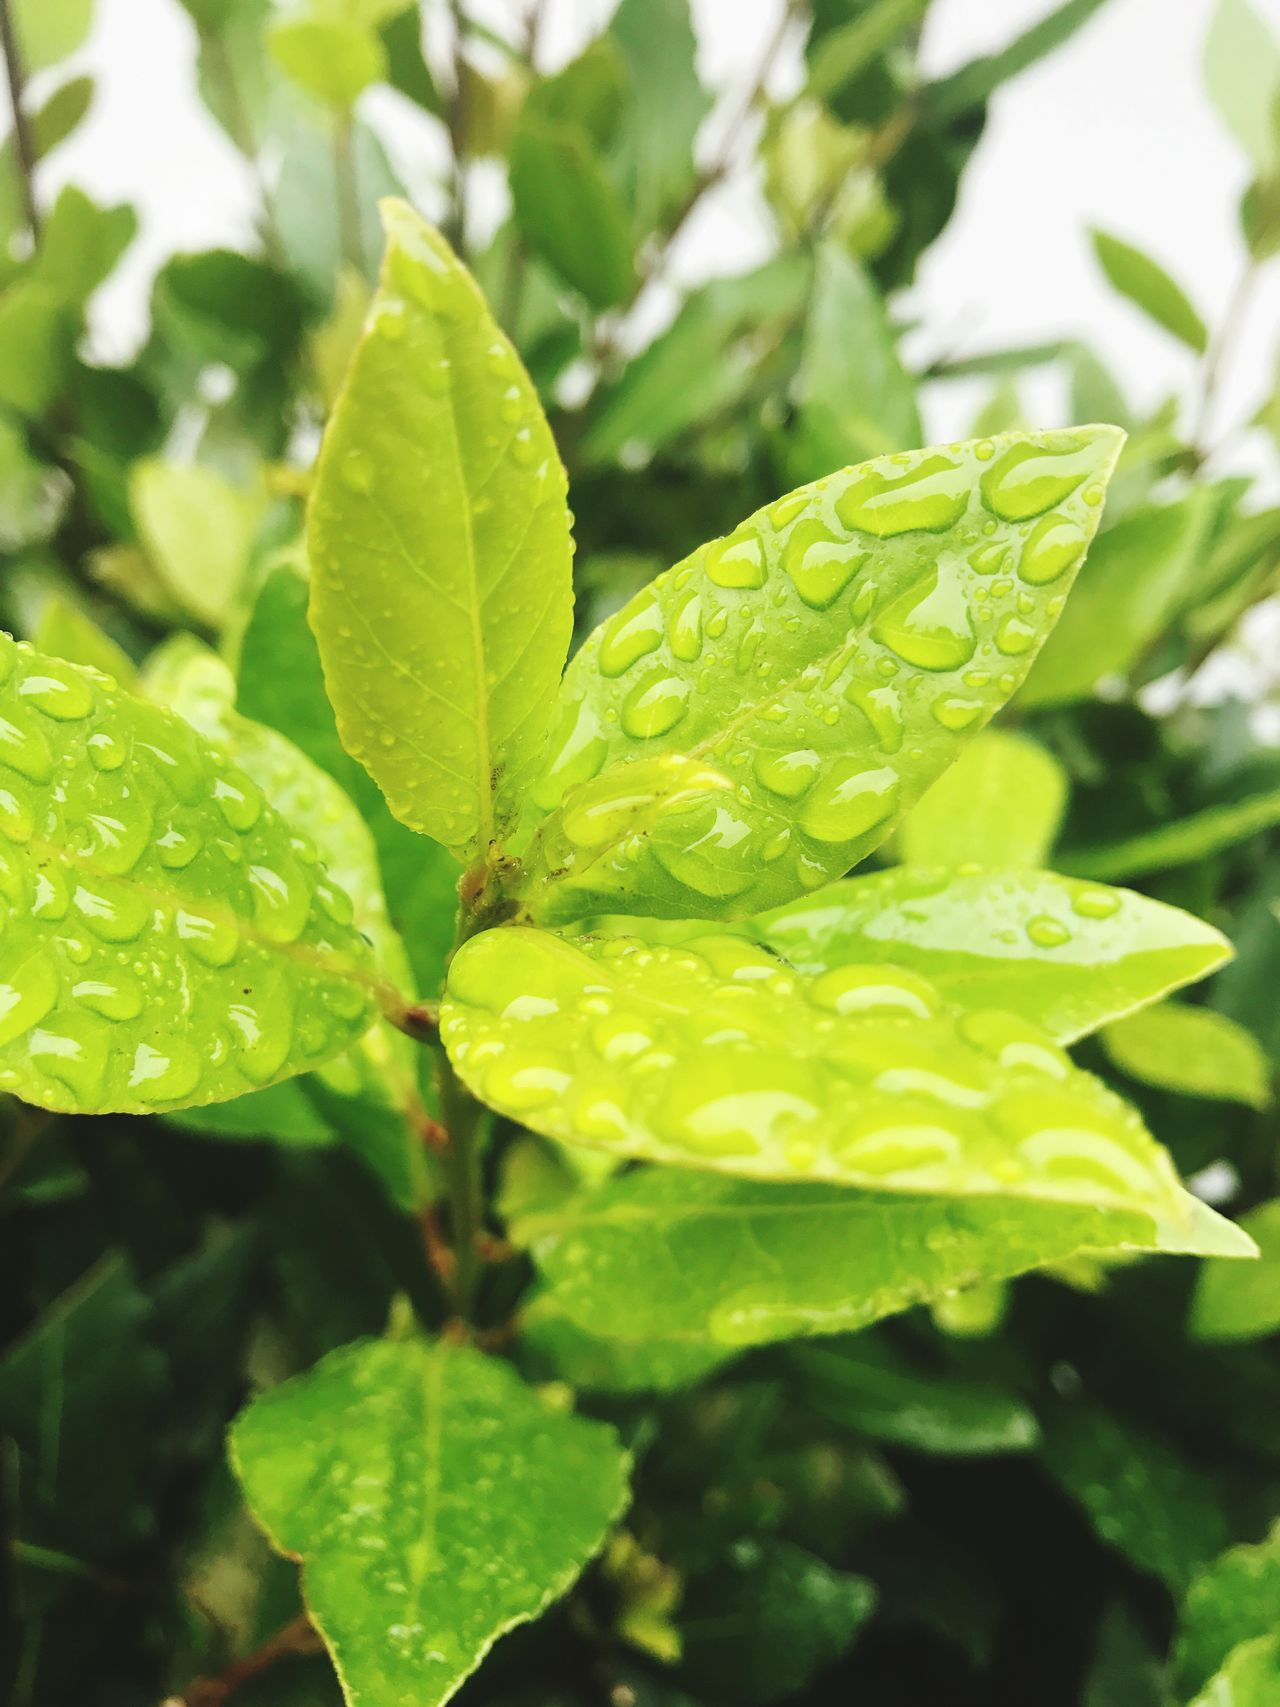 Leaf Drop Nature Wet Green Color Growth Water Plant Close-up Rain Dew RainDrop No People Freshness Green Pure Nature Outdoors Nature Photography Naturelovers Nature On Your Doorstep Nature_collection Beauty In Nature Day Fragility